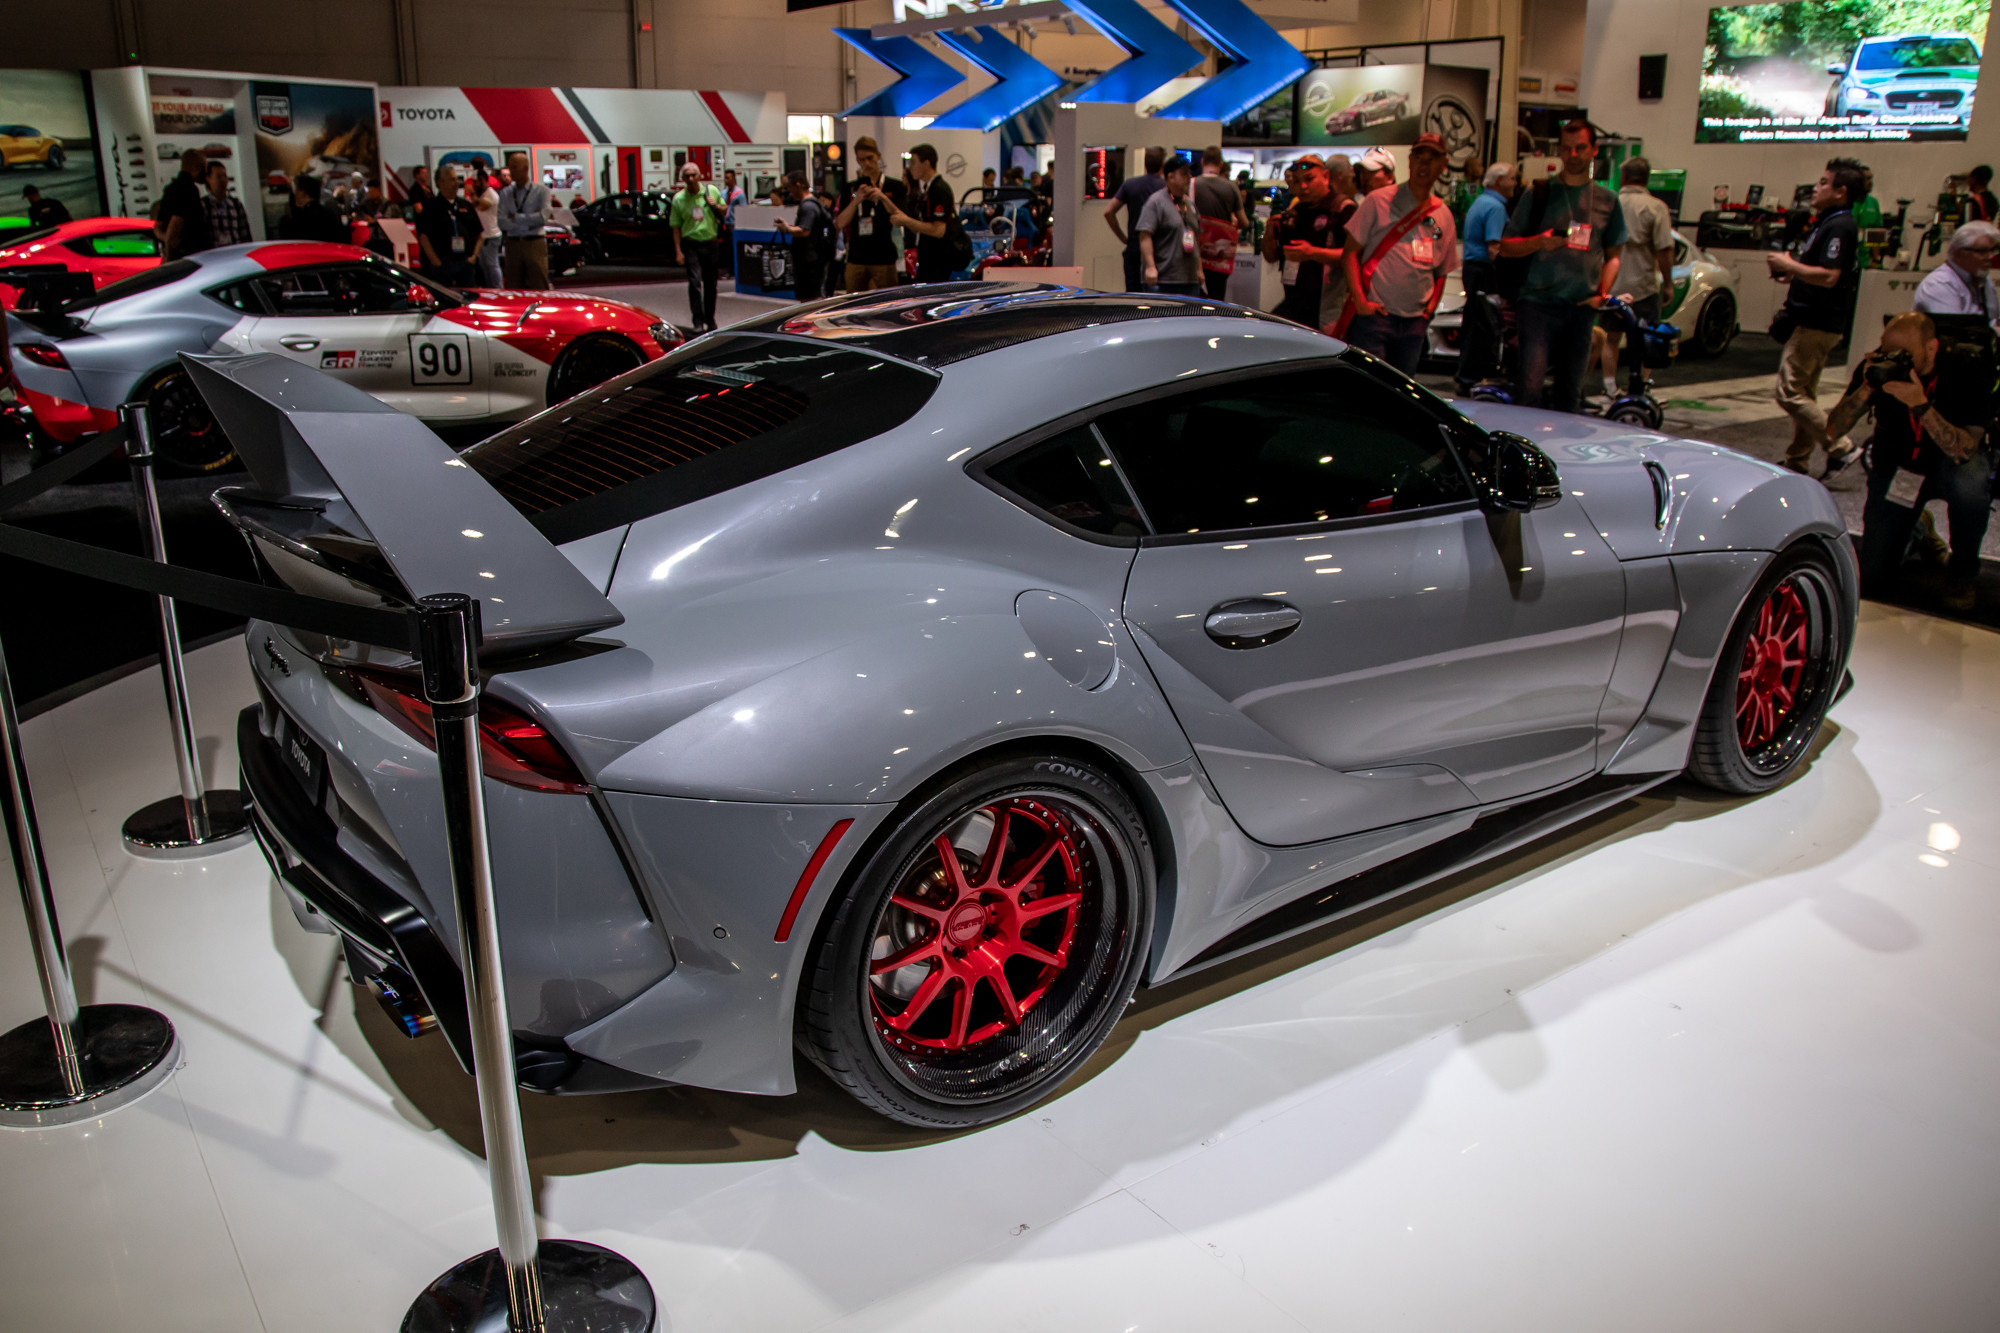 Sema Show 2020.Coolest Cars Of The 2019 Sema Show News Cars Com